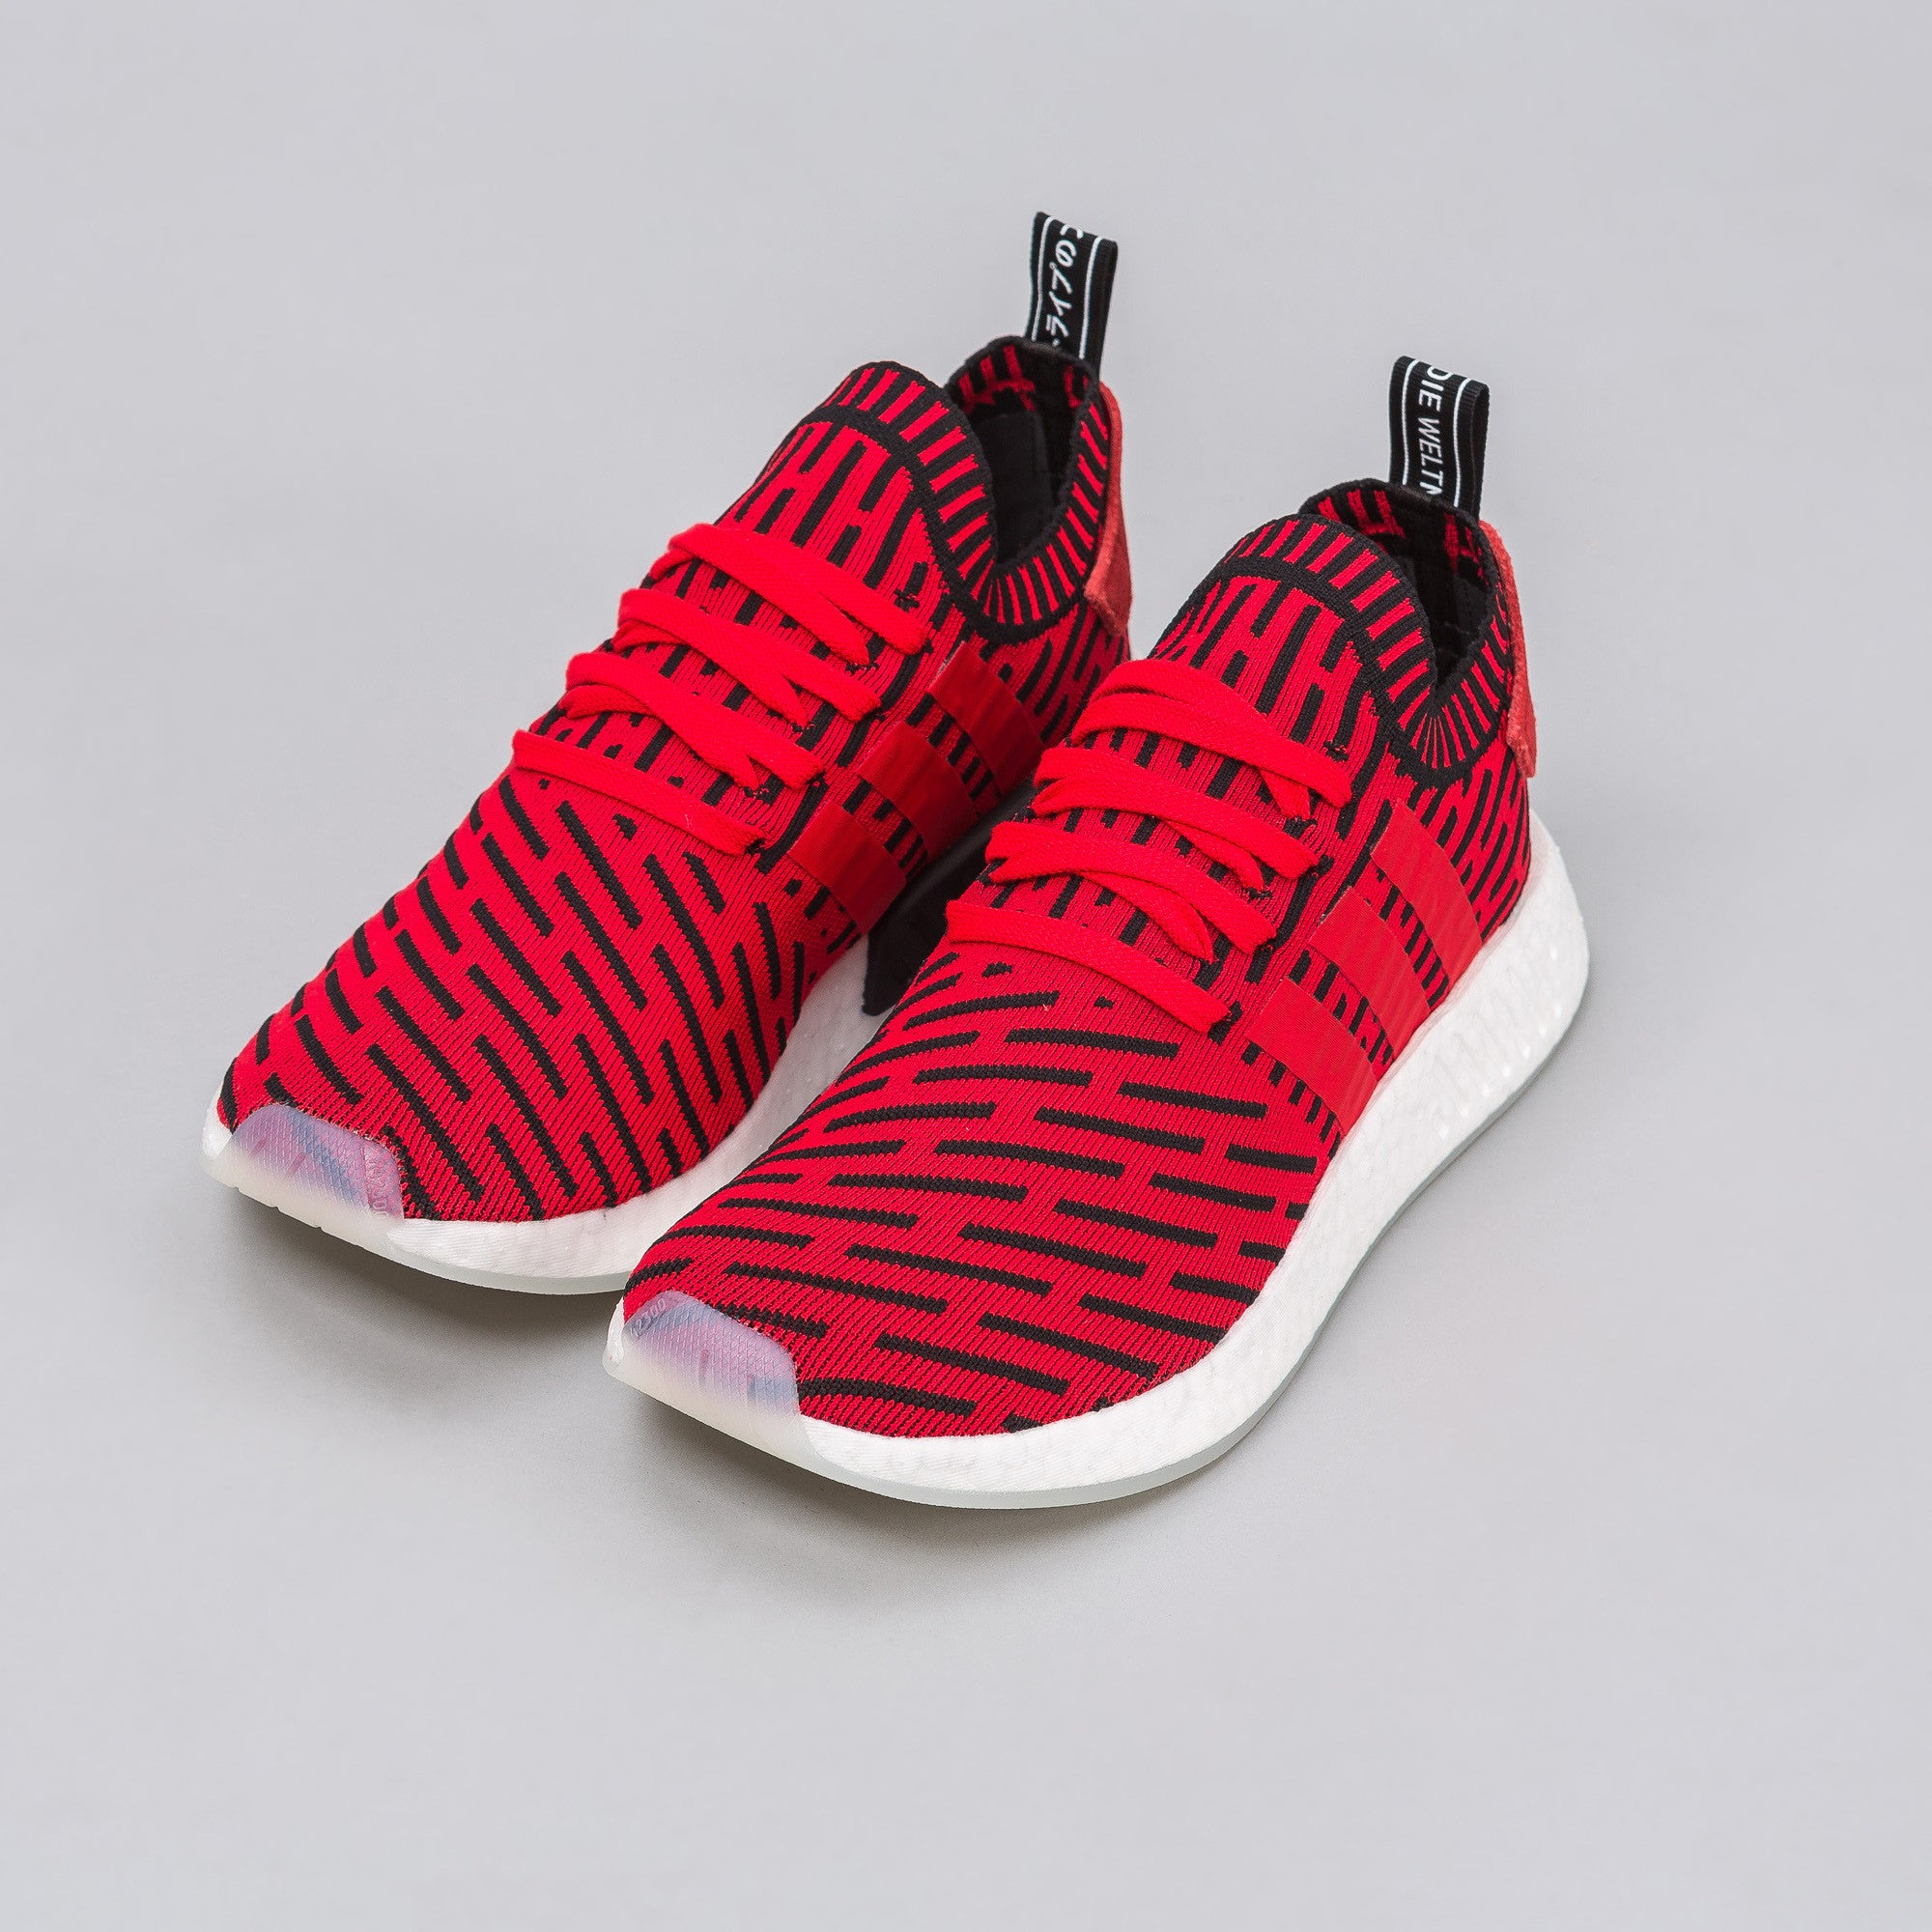 Cheap Adidas NMD R1 Primeknit (zebra) Shoes for sale in Shah Alam